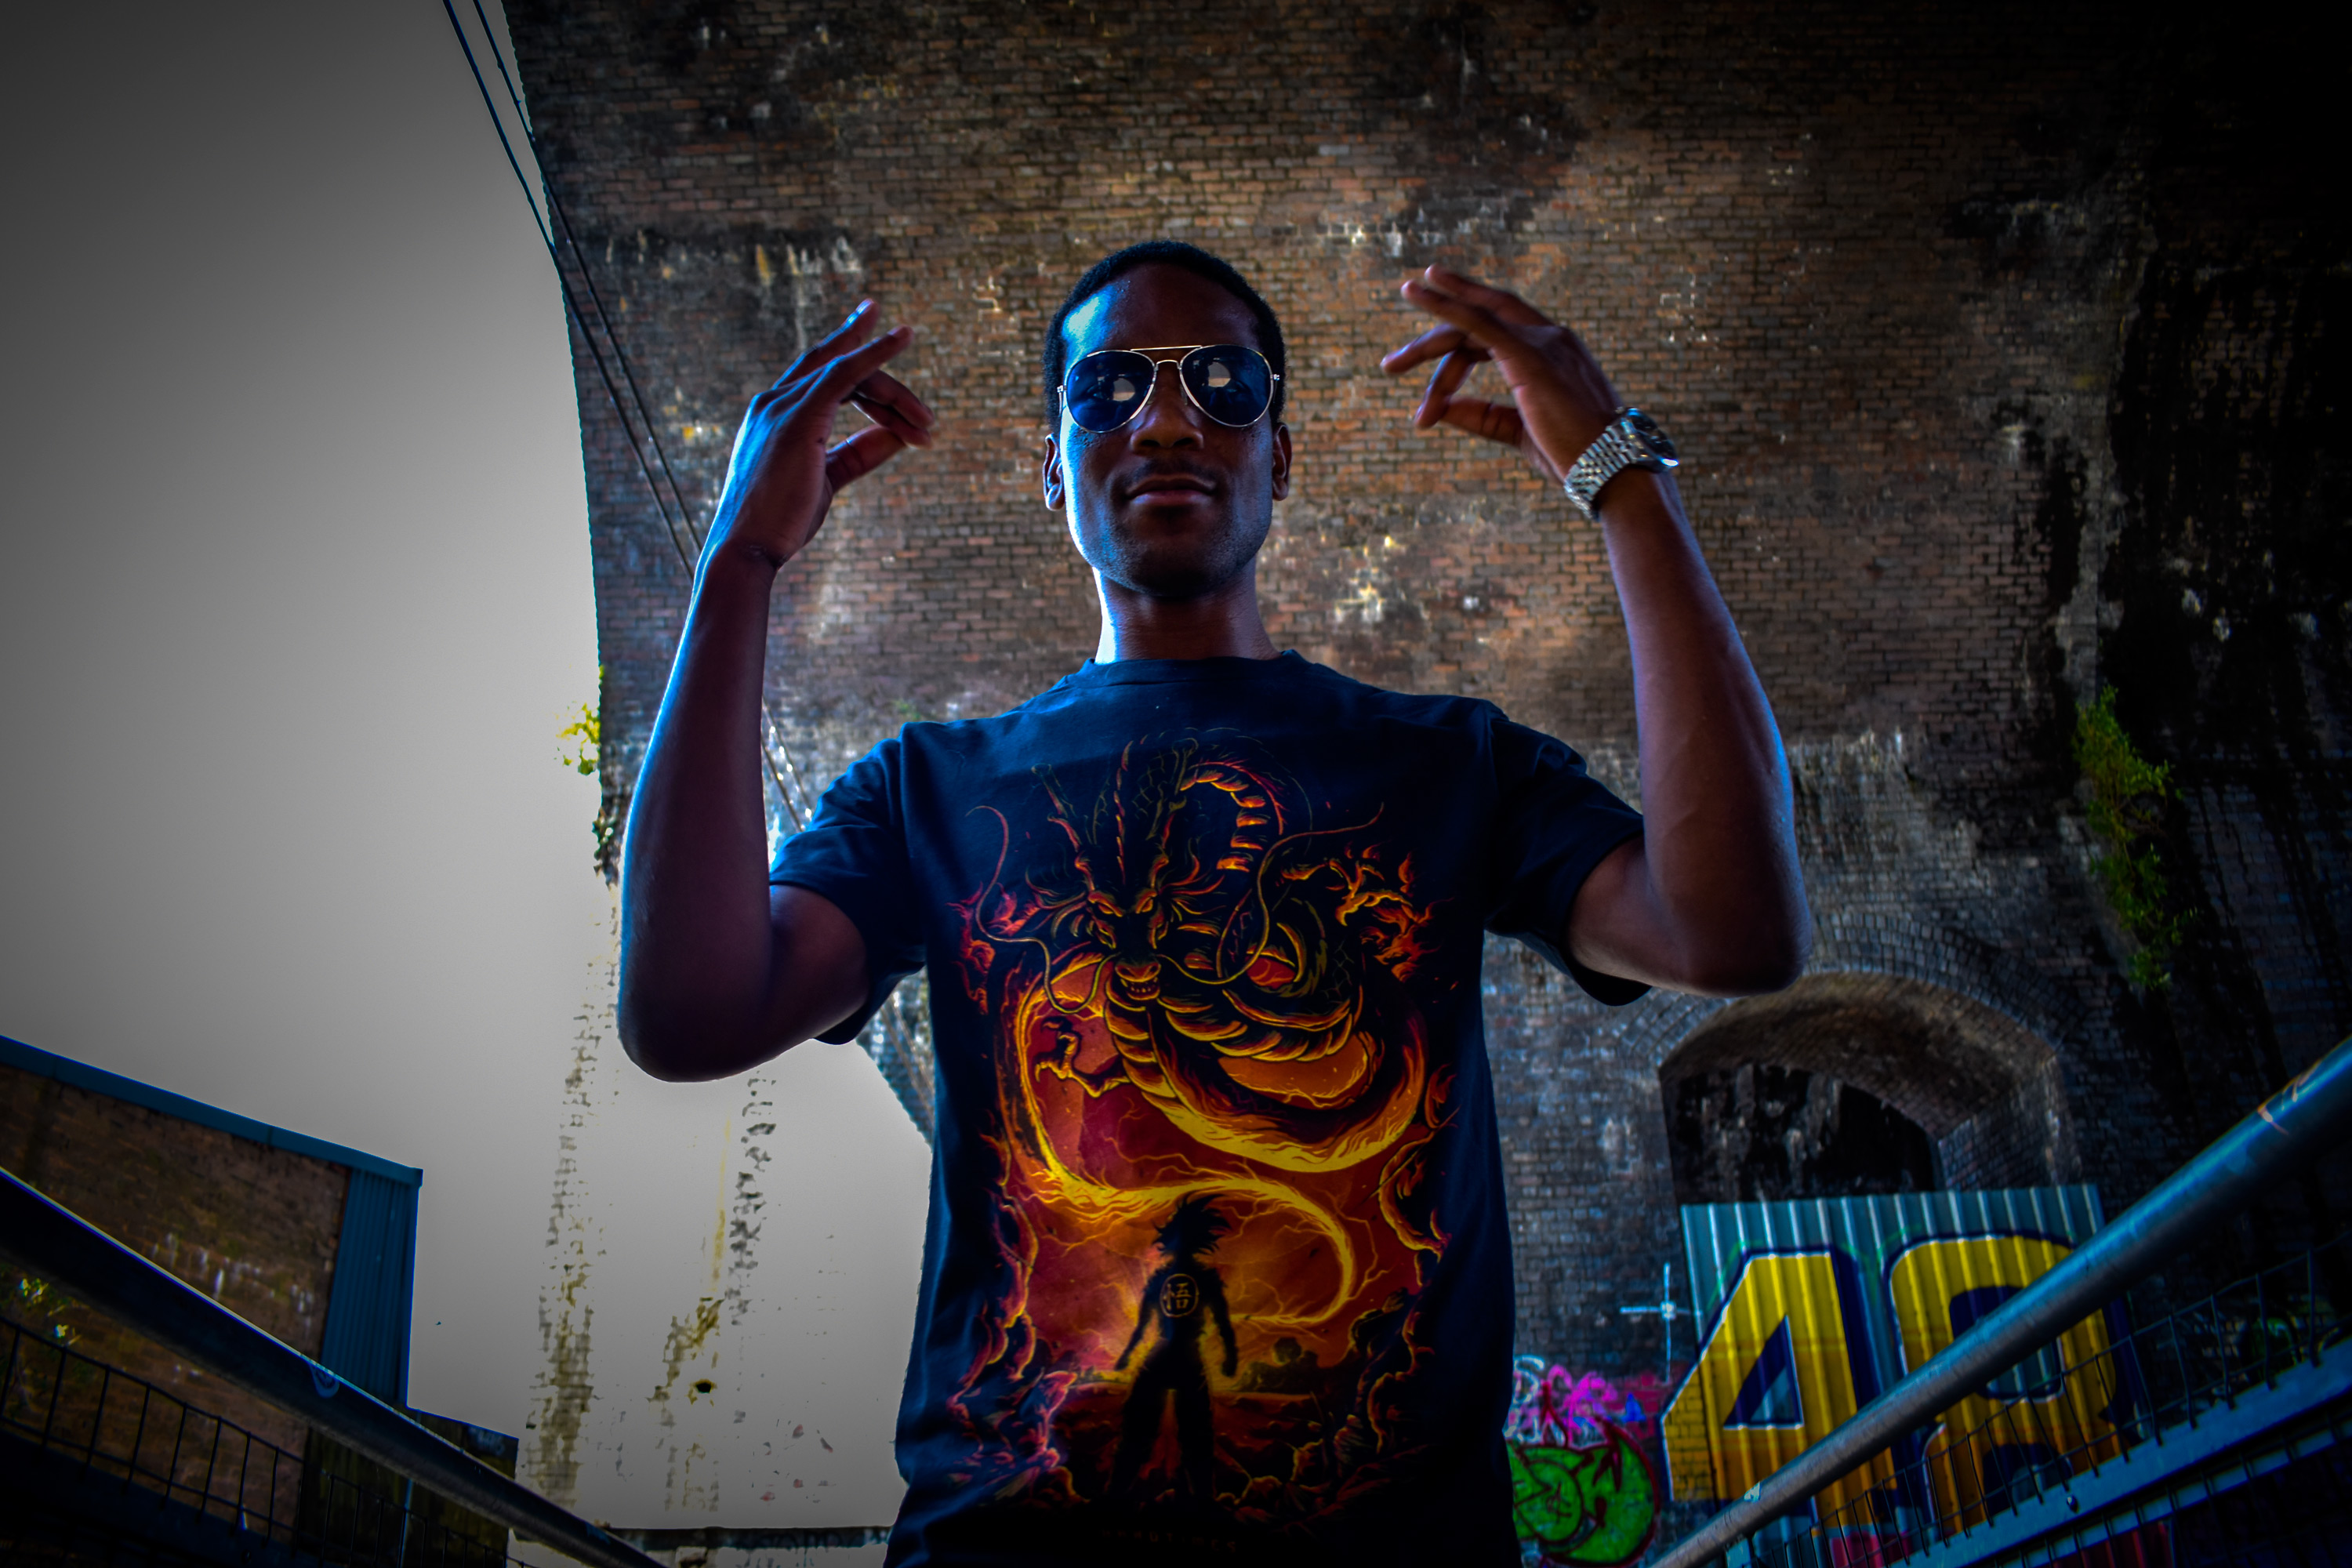 Hardtimes Tee over 9000 in the Arches Digbeth Birmingham